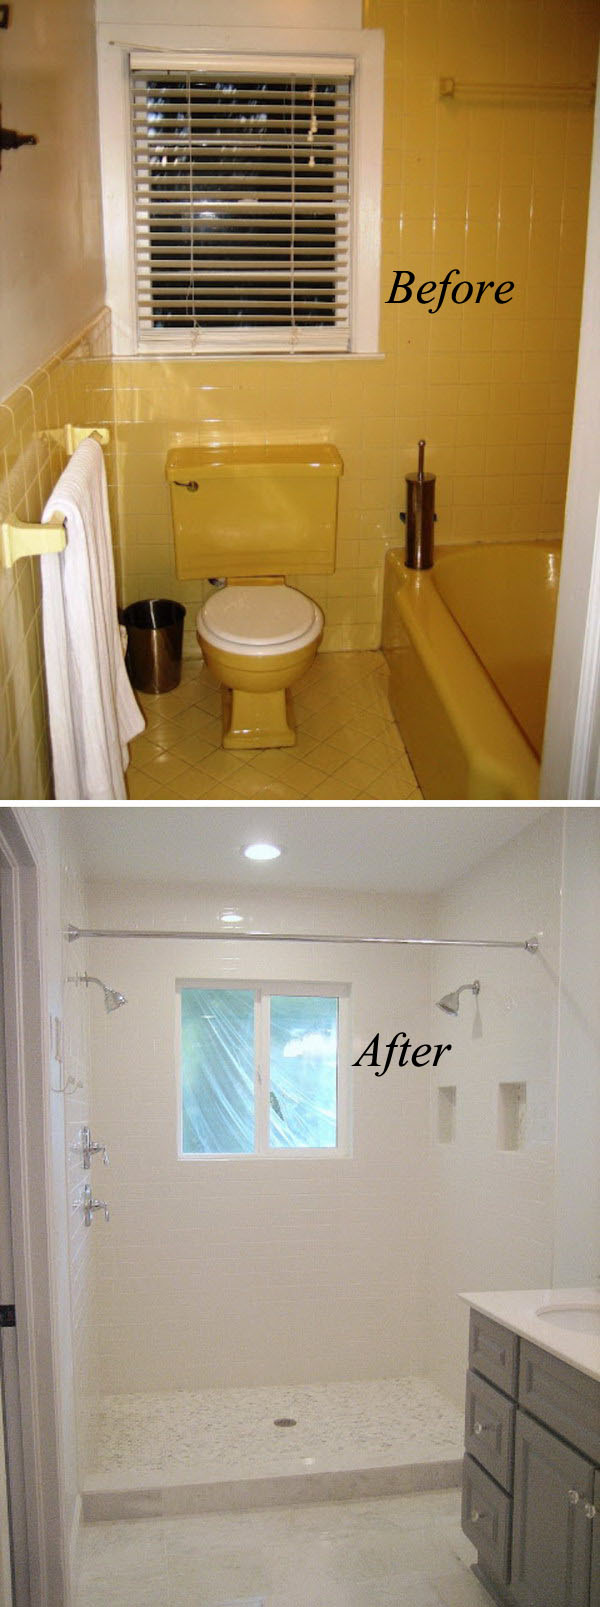 Gentil White Bathroom Remodel. From Yellow To White Bathroom Renovation Remodel